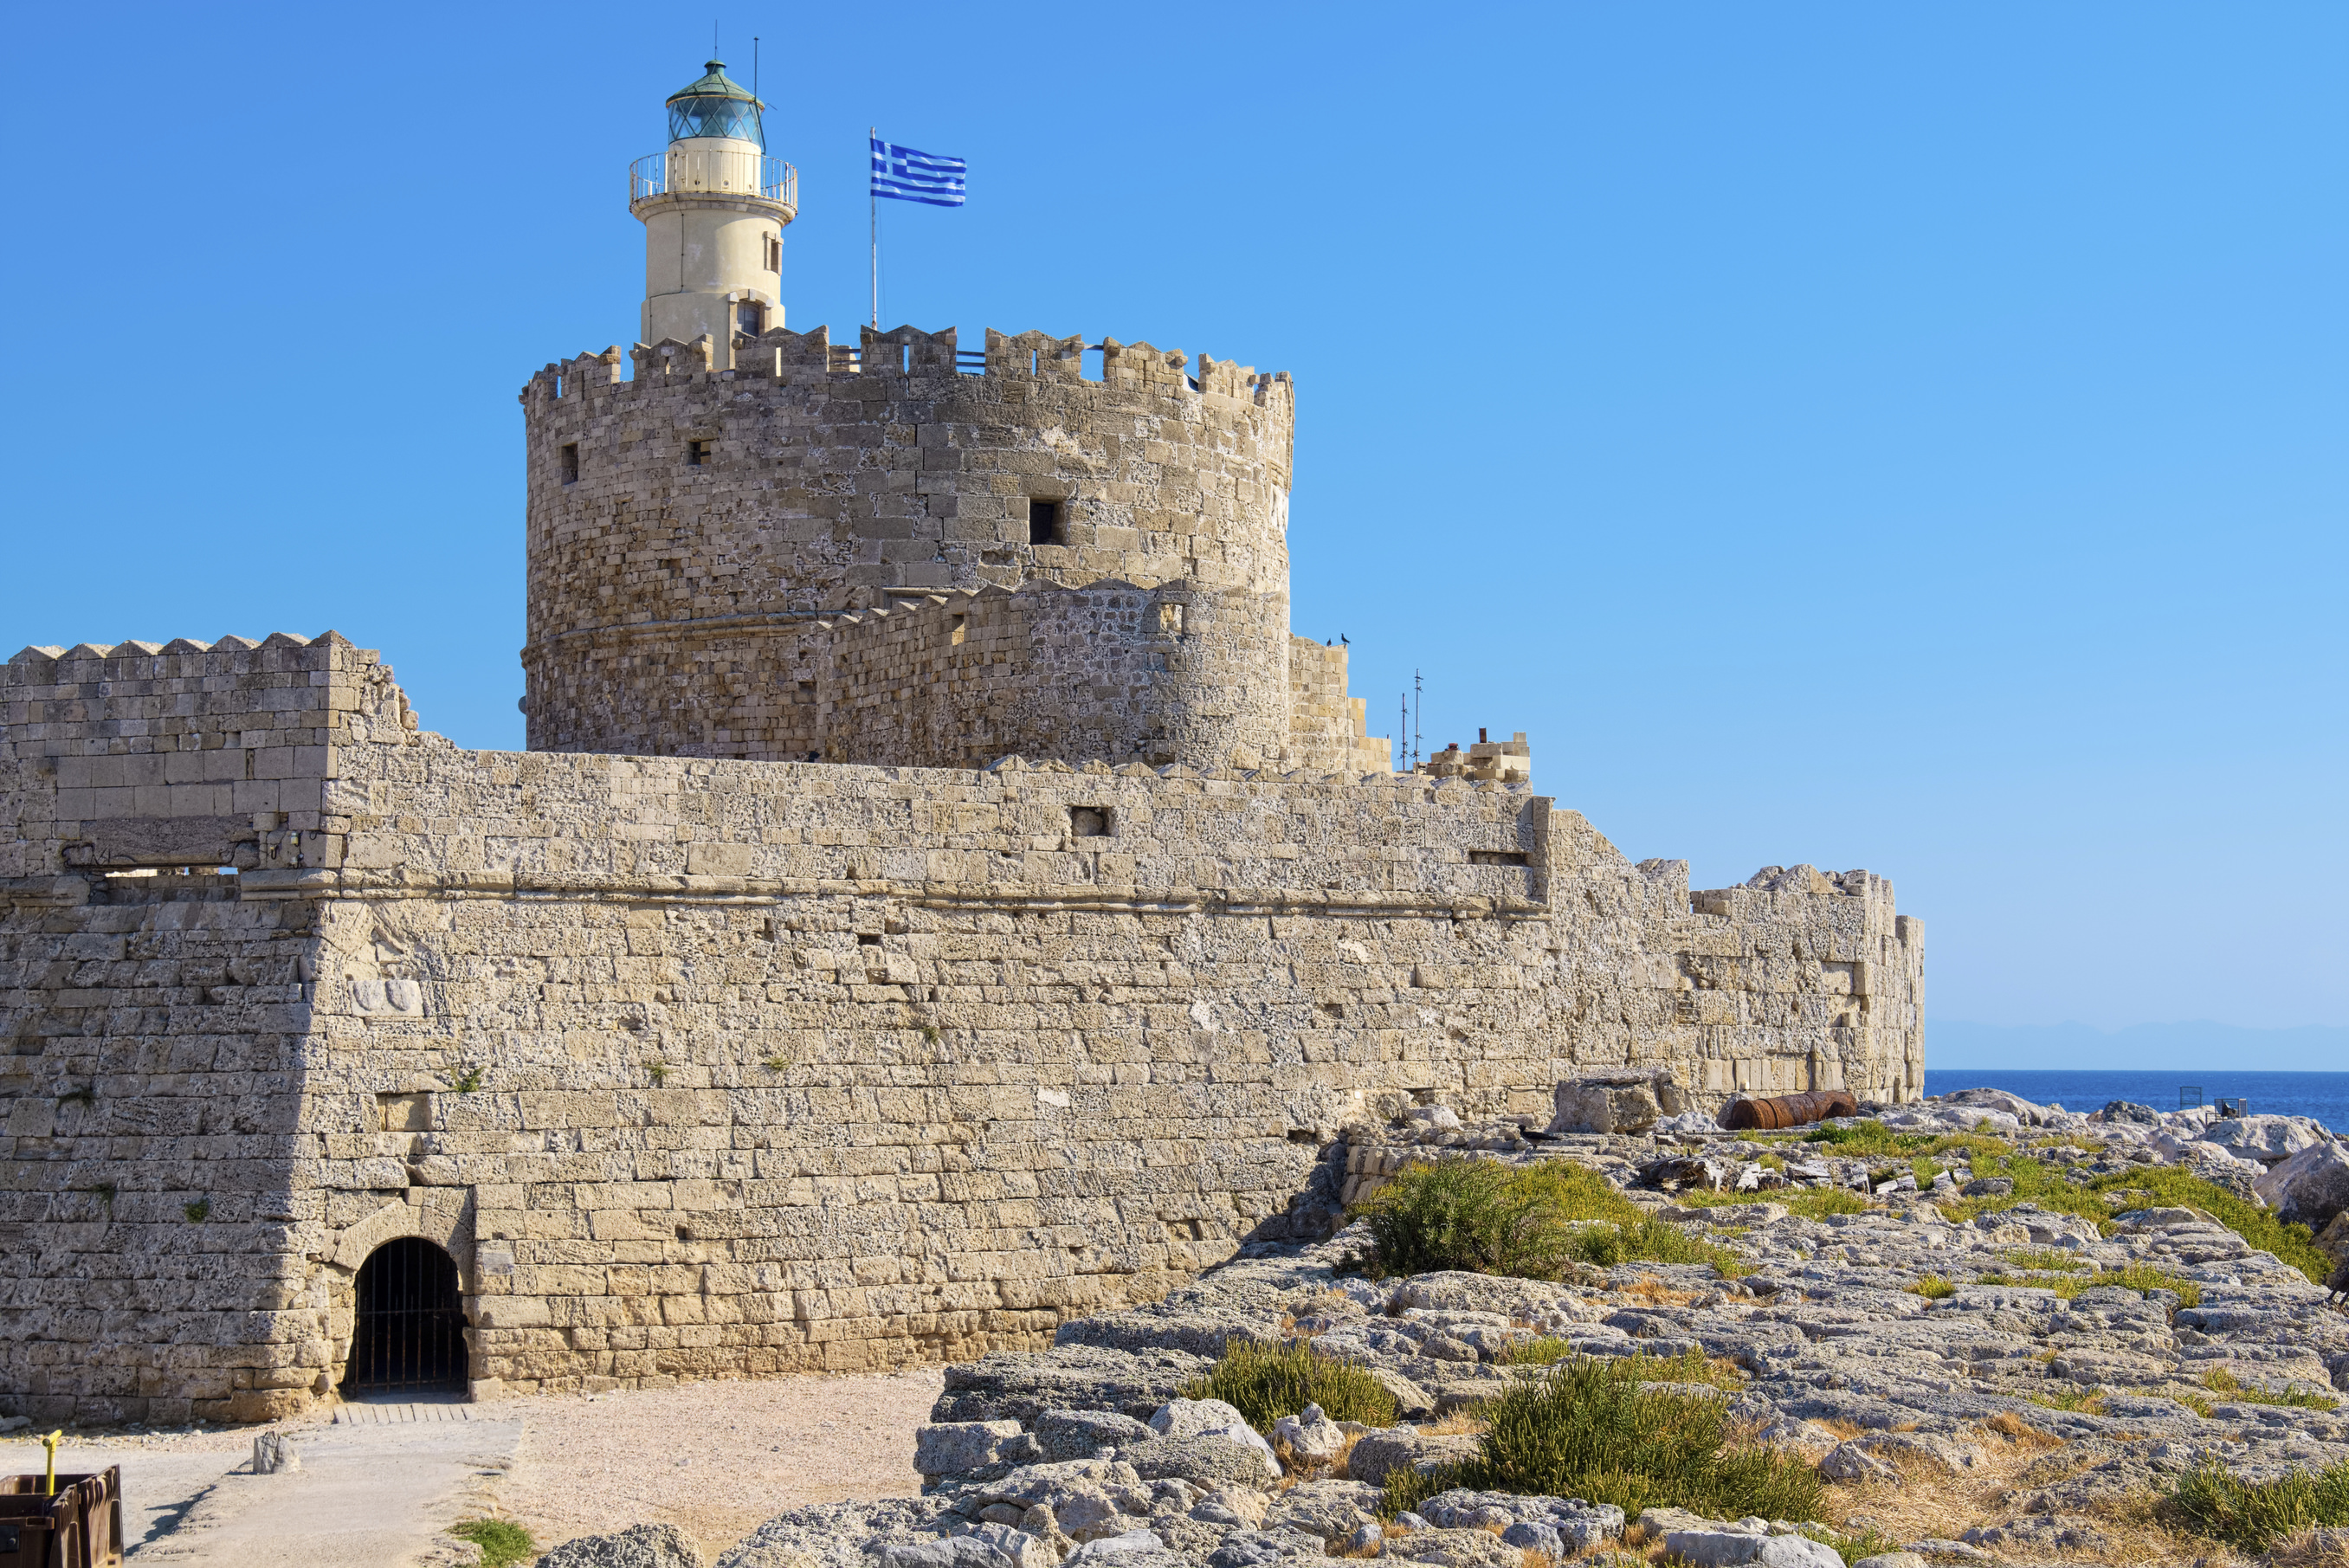 Old Agios Nikolaos fortress and lighthouse in Mandraki Harbour. Rhodes, Dodecanese, Greece